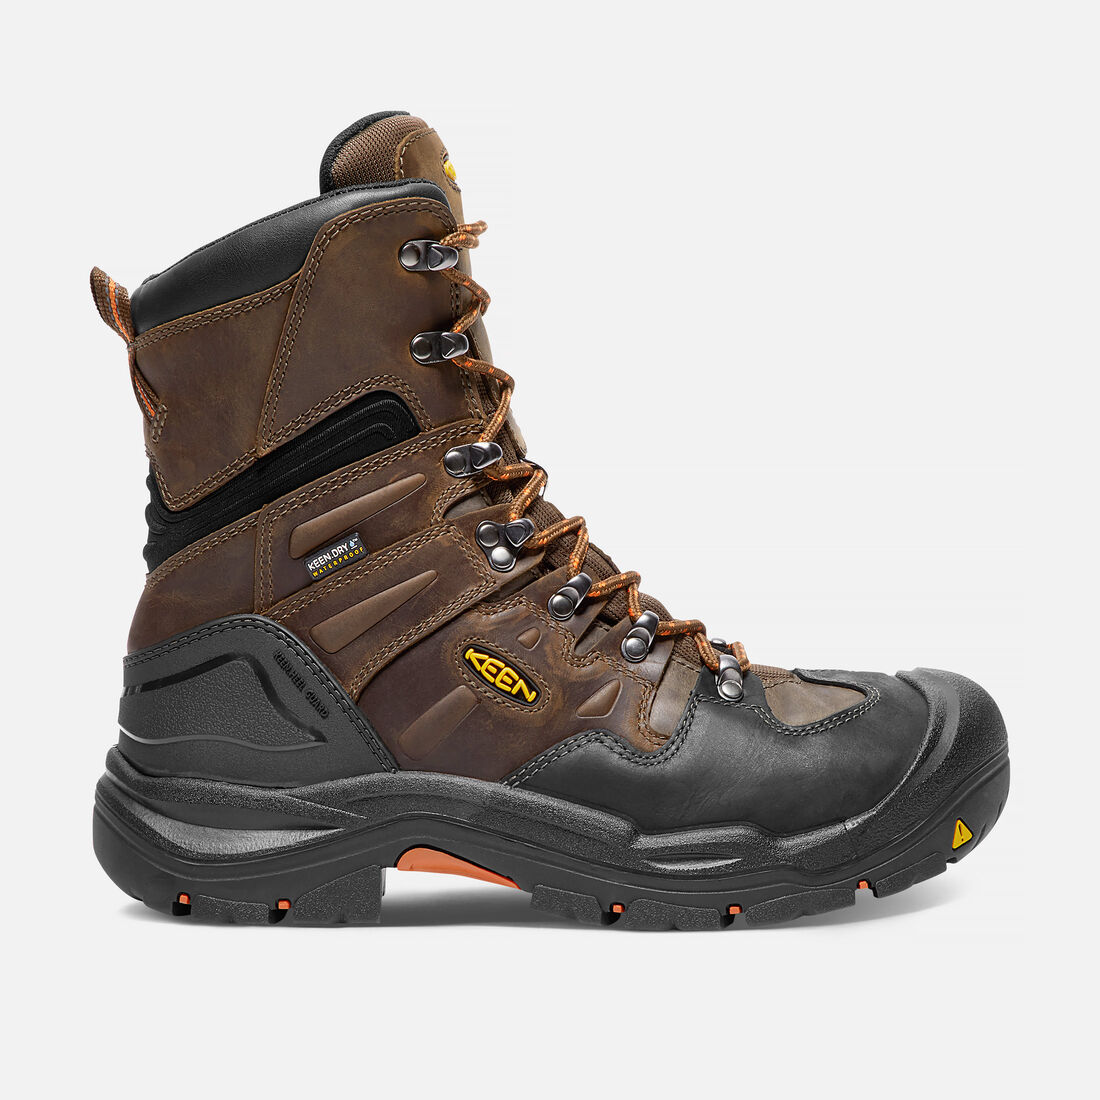 "Men's COBURG 8"" Waterproof Boot (Steel Toe) in Cascade Brown/Brindle - large view."